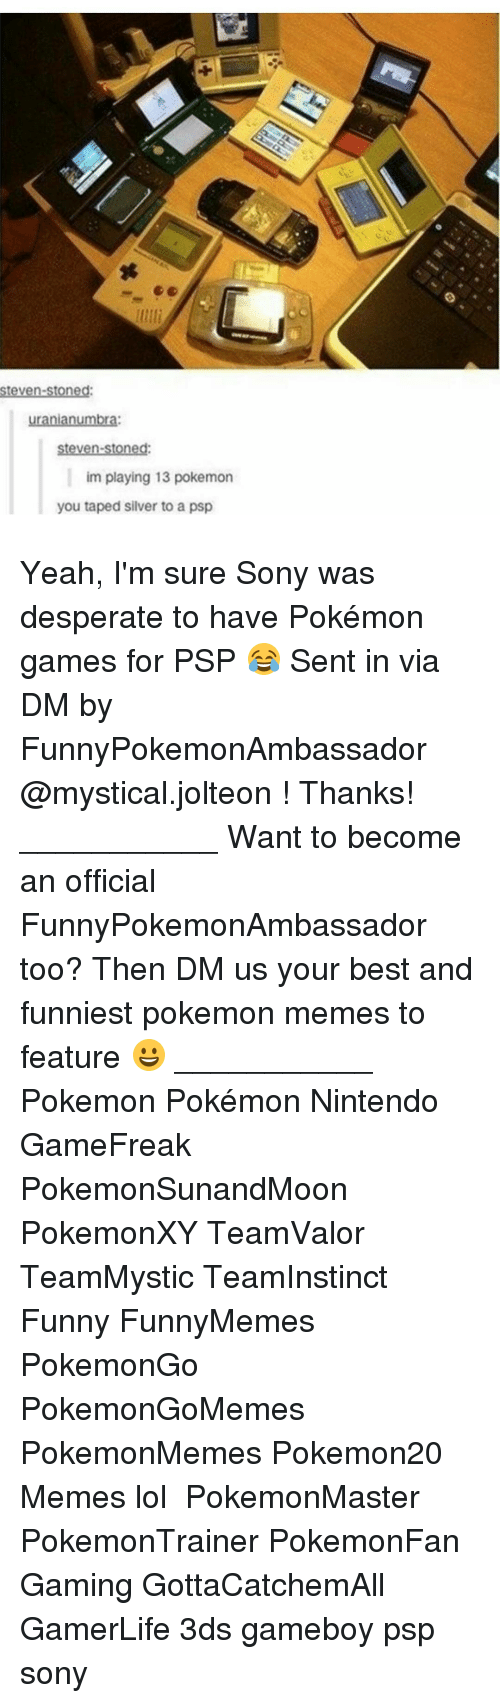 Memes, Mysticism, and 🤖: Steven-stoned:  uranianumbr  steven-stoned:  im playing 13 pokemon  you taped silver to a psp Yeah, I'm sure Sony was desperate to have Pokémon games for PSP 😂 Sent in via DM by FunnyPokemonAmbassador @mystical.jolteon ! Thanks! ___________ Want to become an official FunnyPokemonAmbassador too? Then DM us your best and funniest pokemon memes to feature 😀 ___________ Pokemon Pokémon Nintendo GameFreak PokemonSunandMoon PokemonXY TeamValor TeamMystic TeamInstinct Funny FunnyMemes PokemonGo PokemonGoMemes PokemonMemes Pokemon20 Memes lol ポケットモンスター PokemonMaster PokemonTrainer PokemonFan Gaming GottaCatchemAll GamerLife 3ds gameboy psp sony